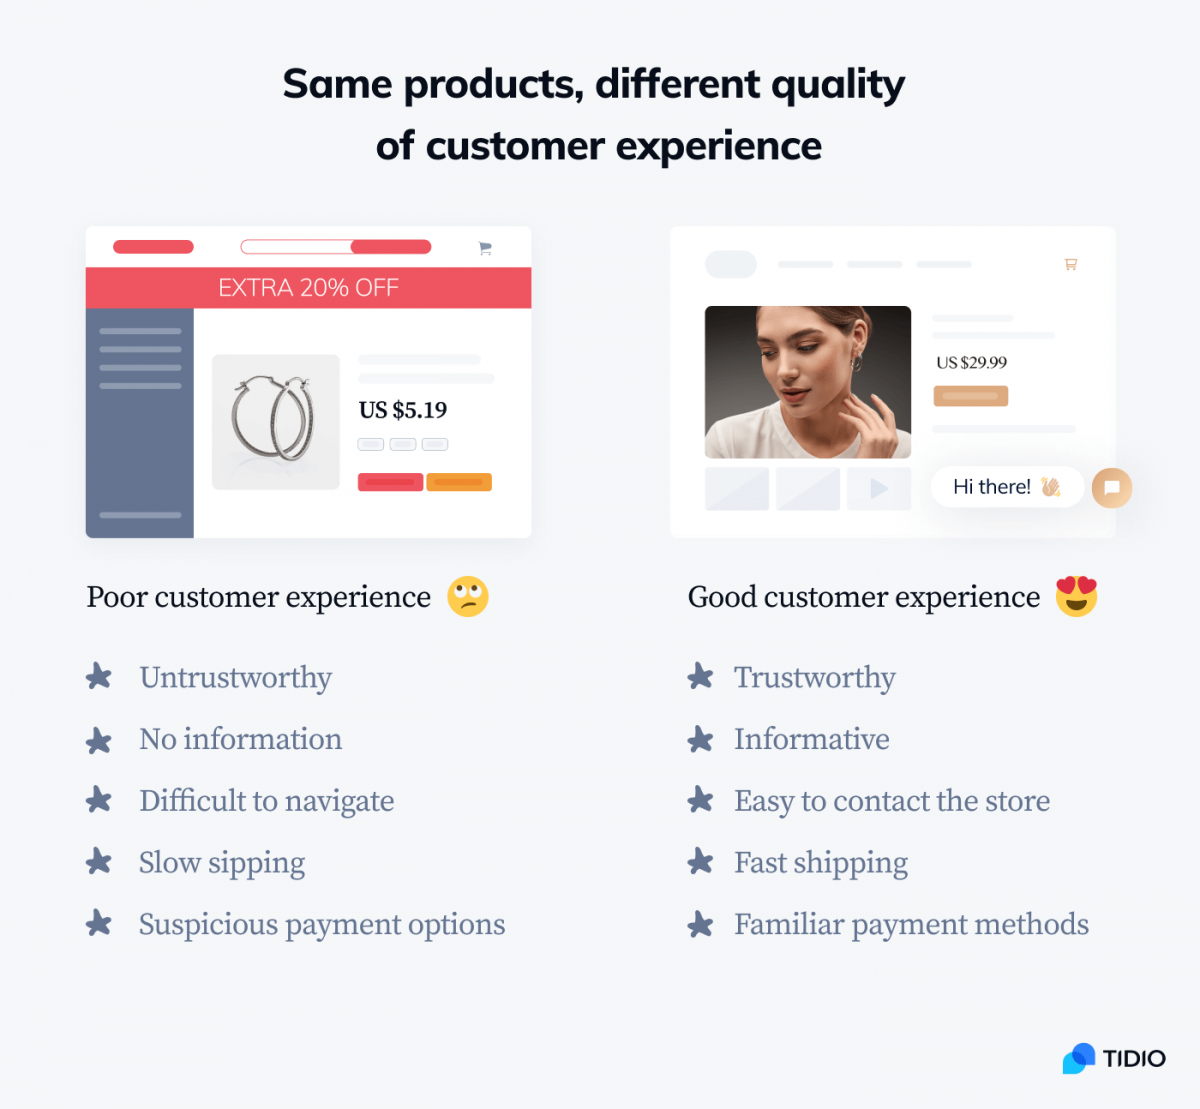 Infographic comparing poor and good customer experience